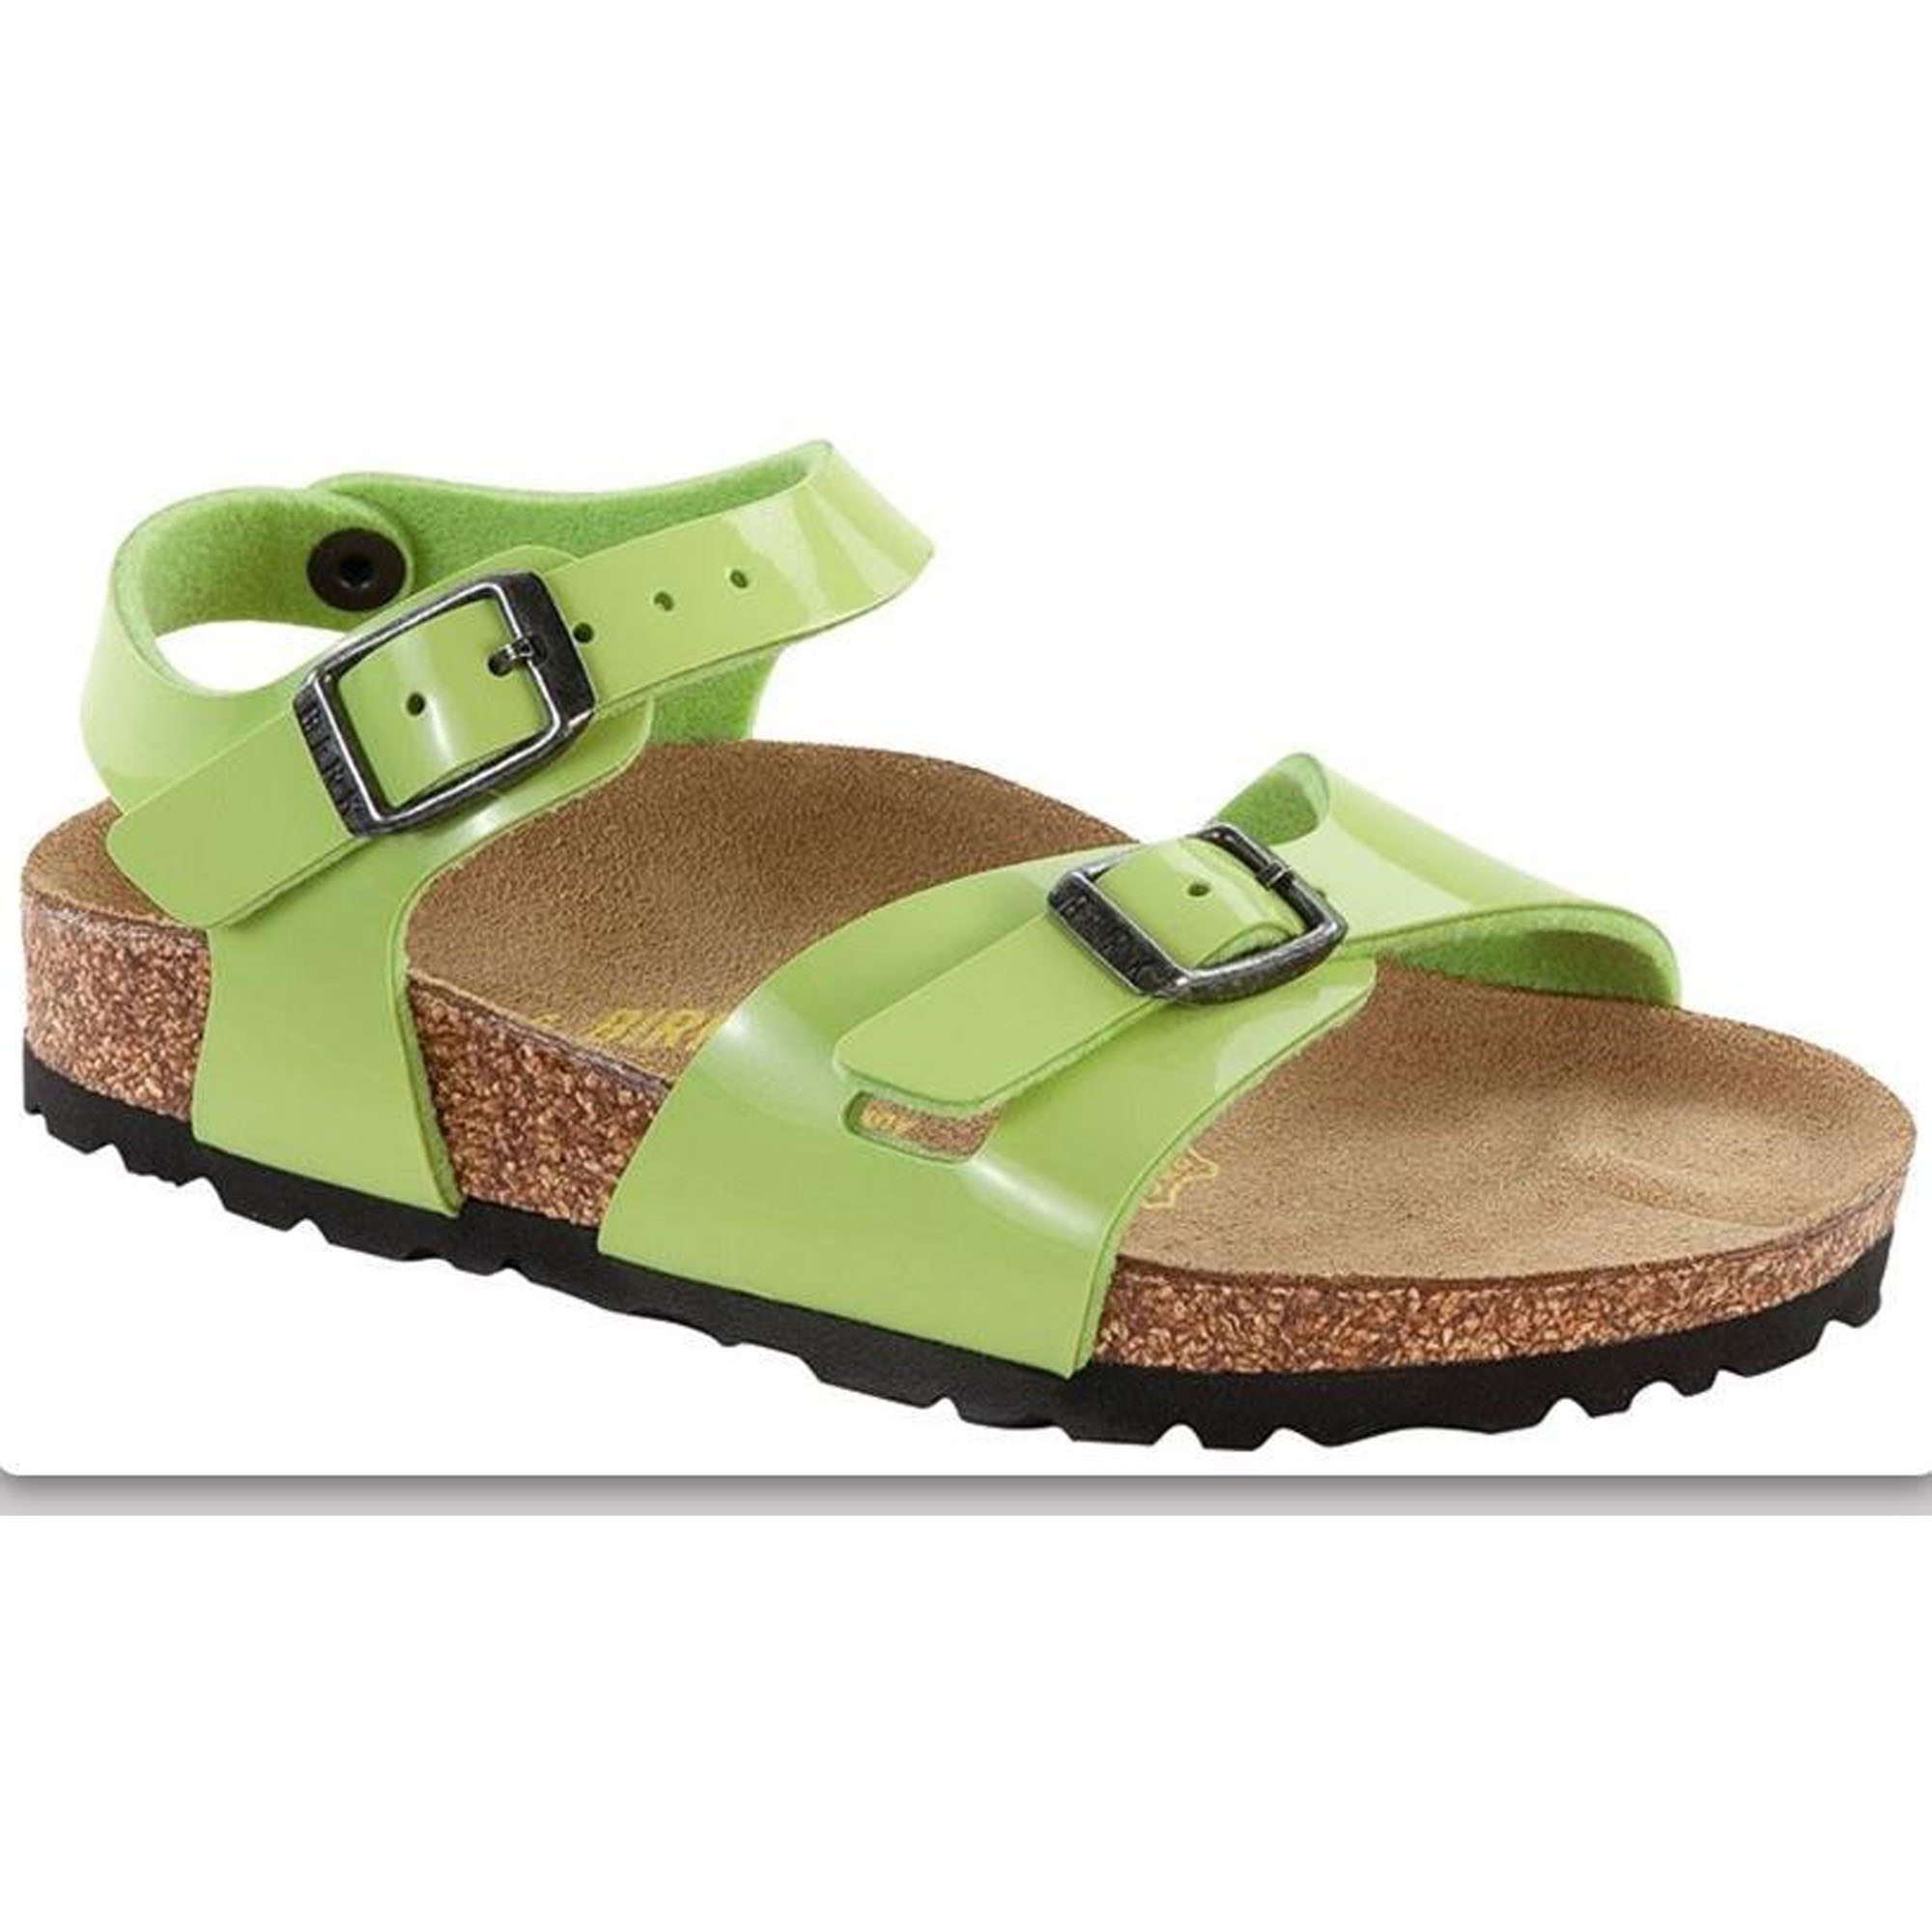 9d132ceff750d cheap birkenstock munich for kids sandal for plantar fasciitis. Natural  leather insole.